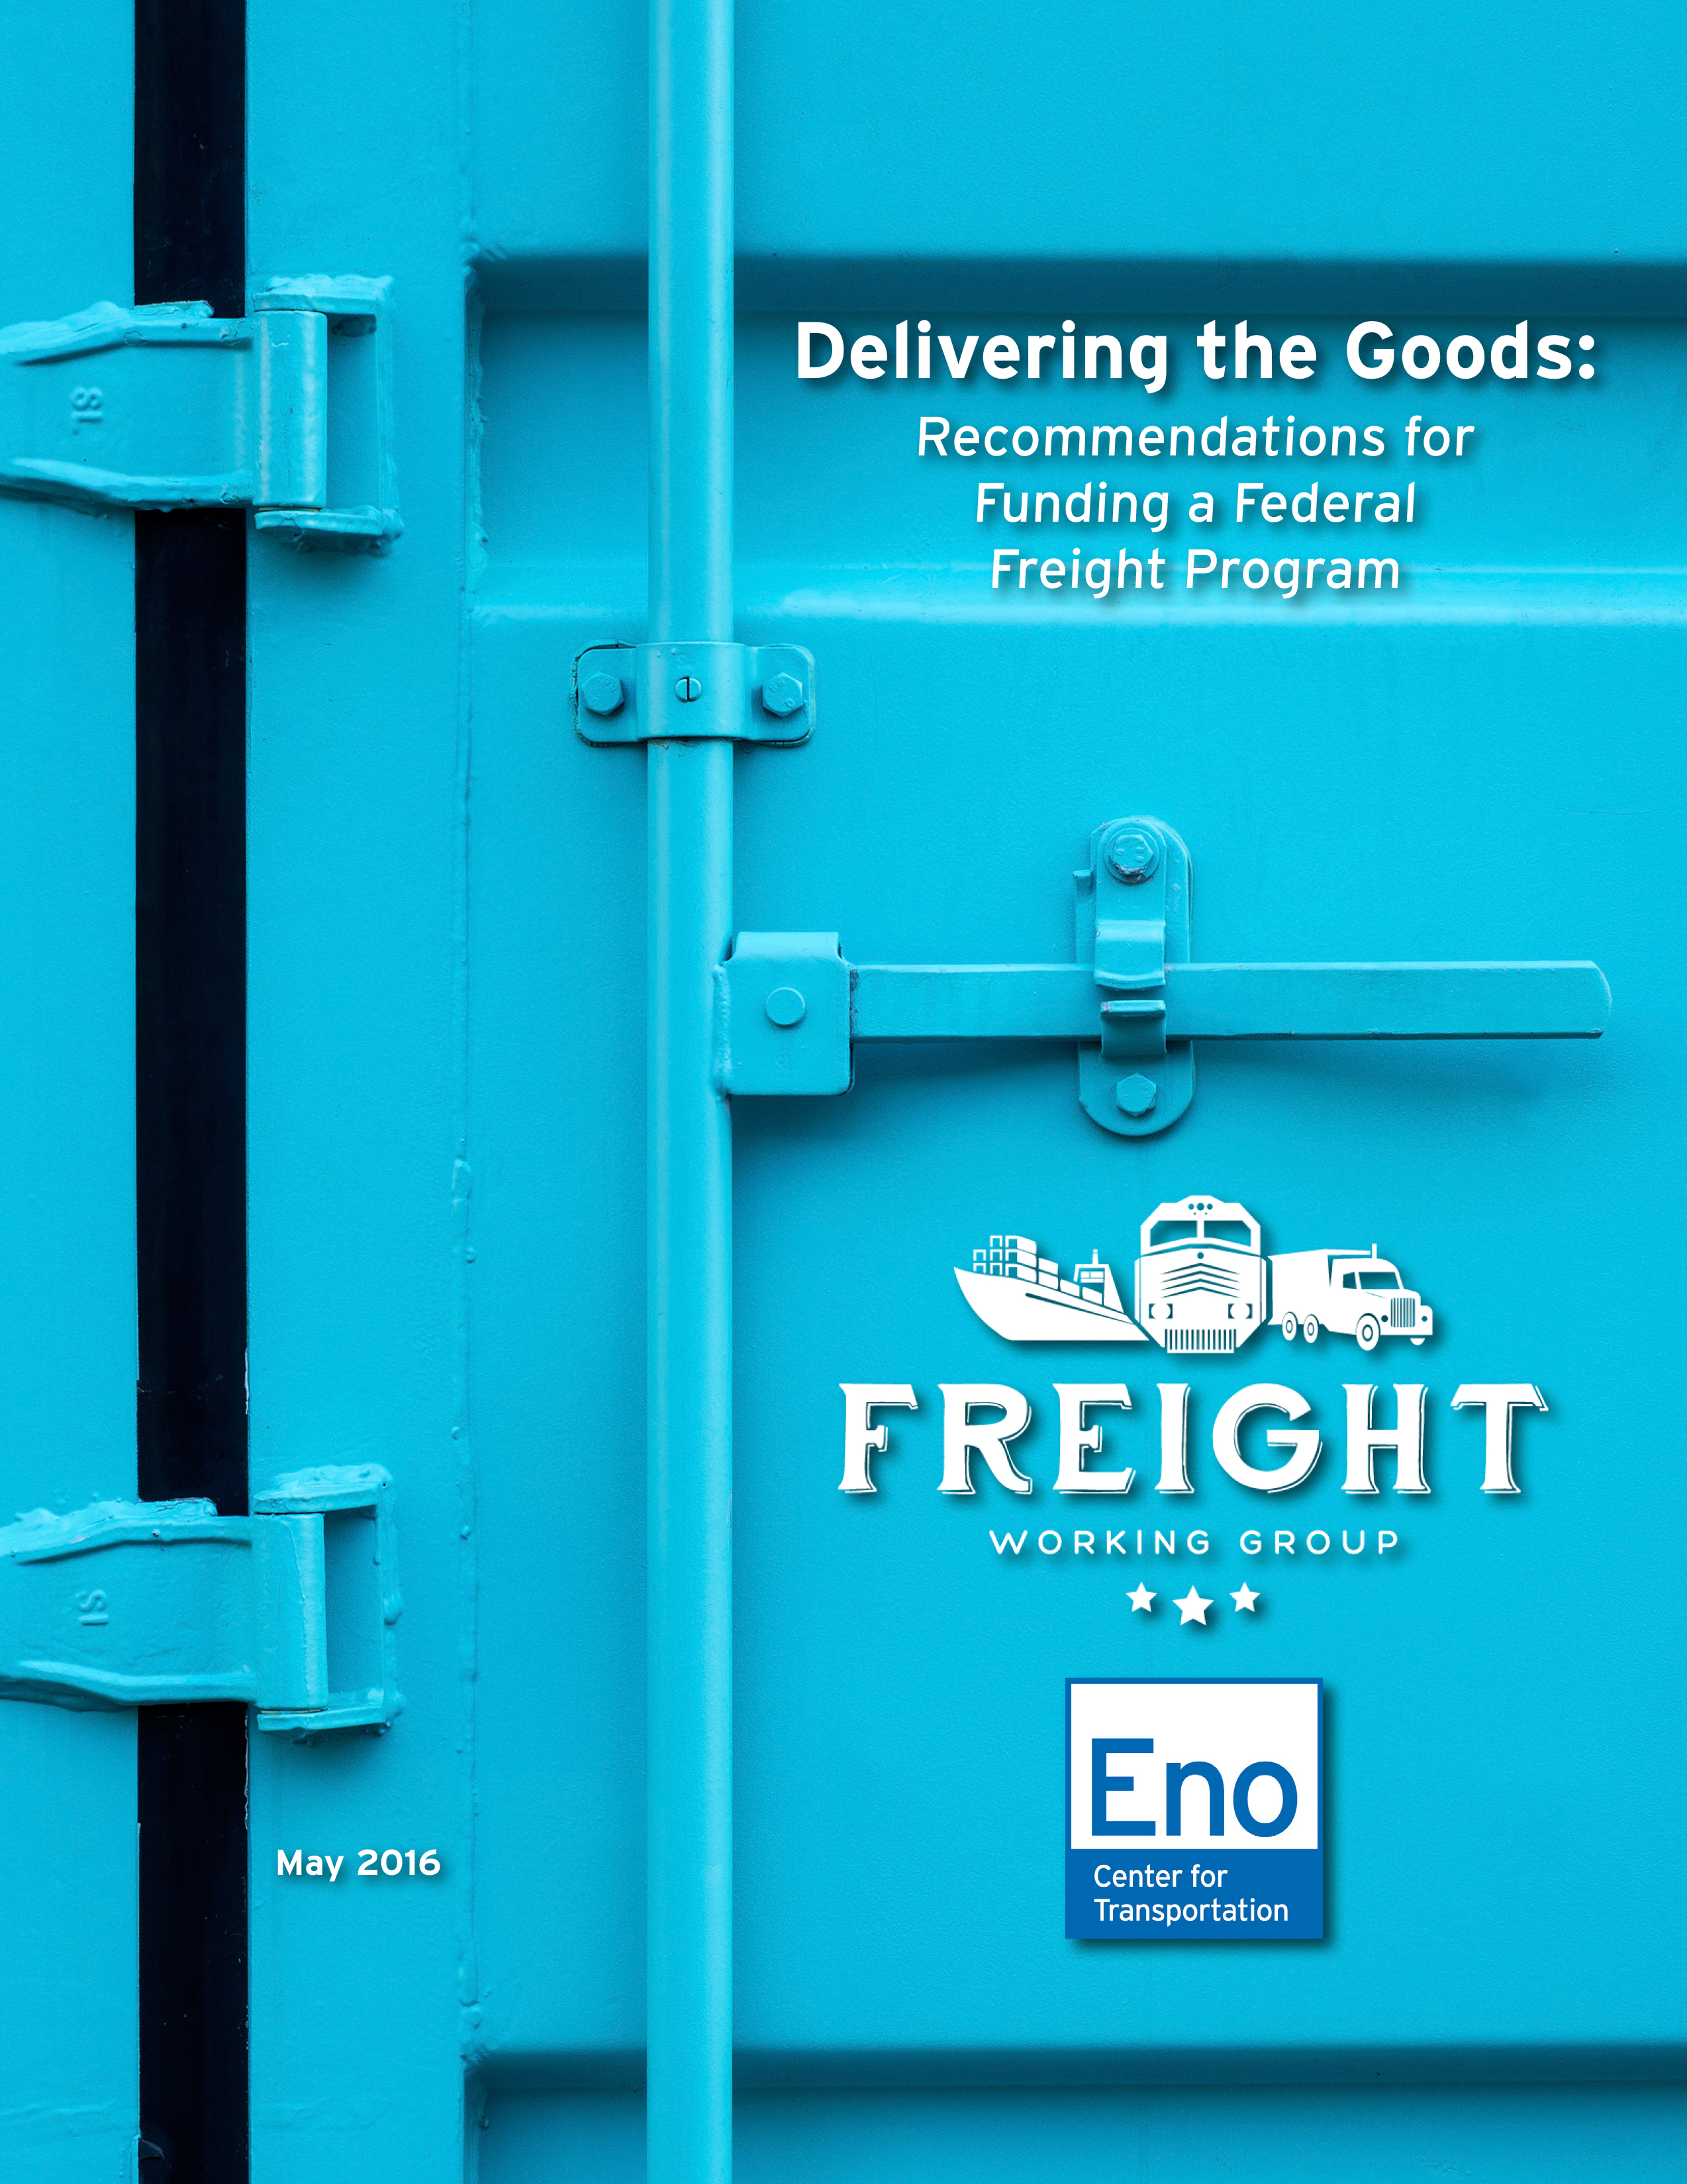 Delivering the Goods: Recommendations for Funding a Federal Freight Program